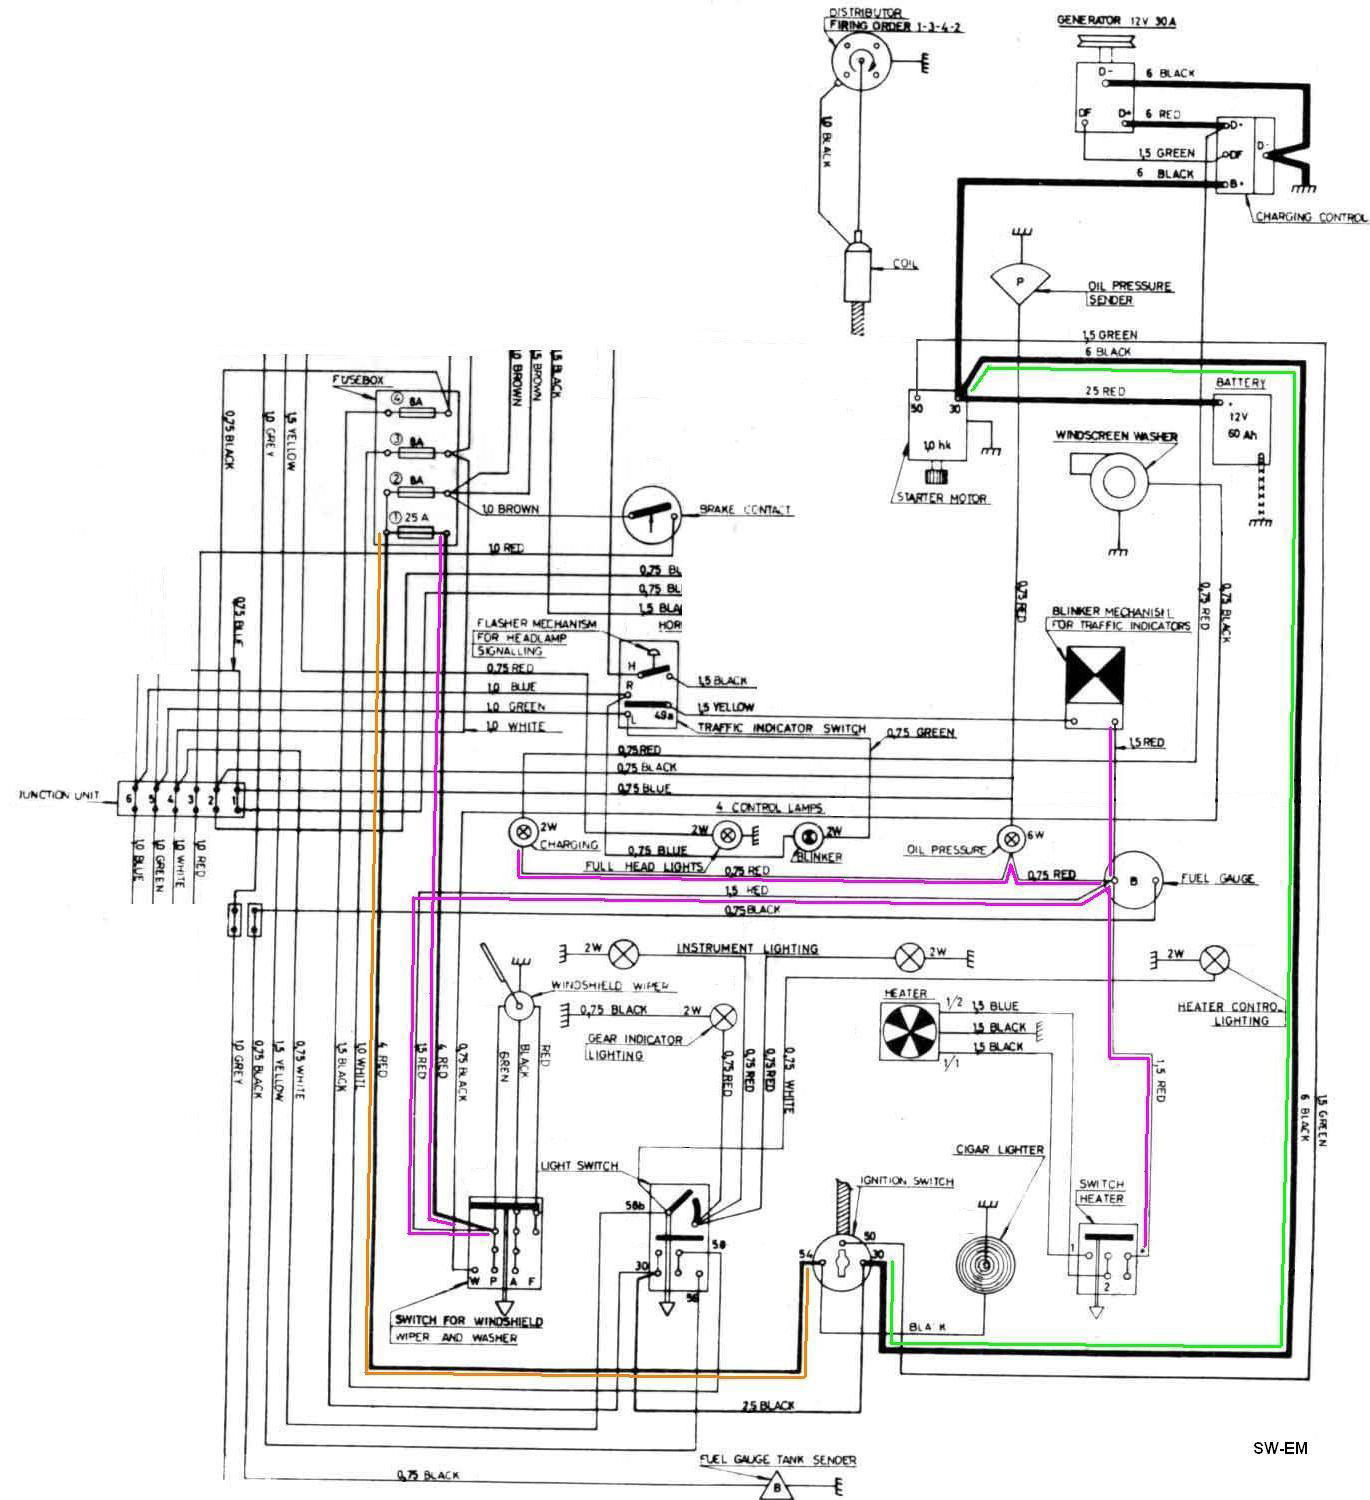 IGN SW wiring diag 122 markup 1800 ignition wiring swedish vs british design volvo penta industrial engine wiring diagram at couponss.co